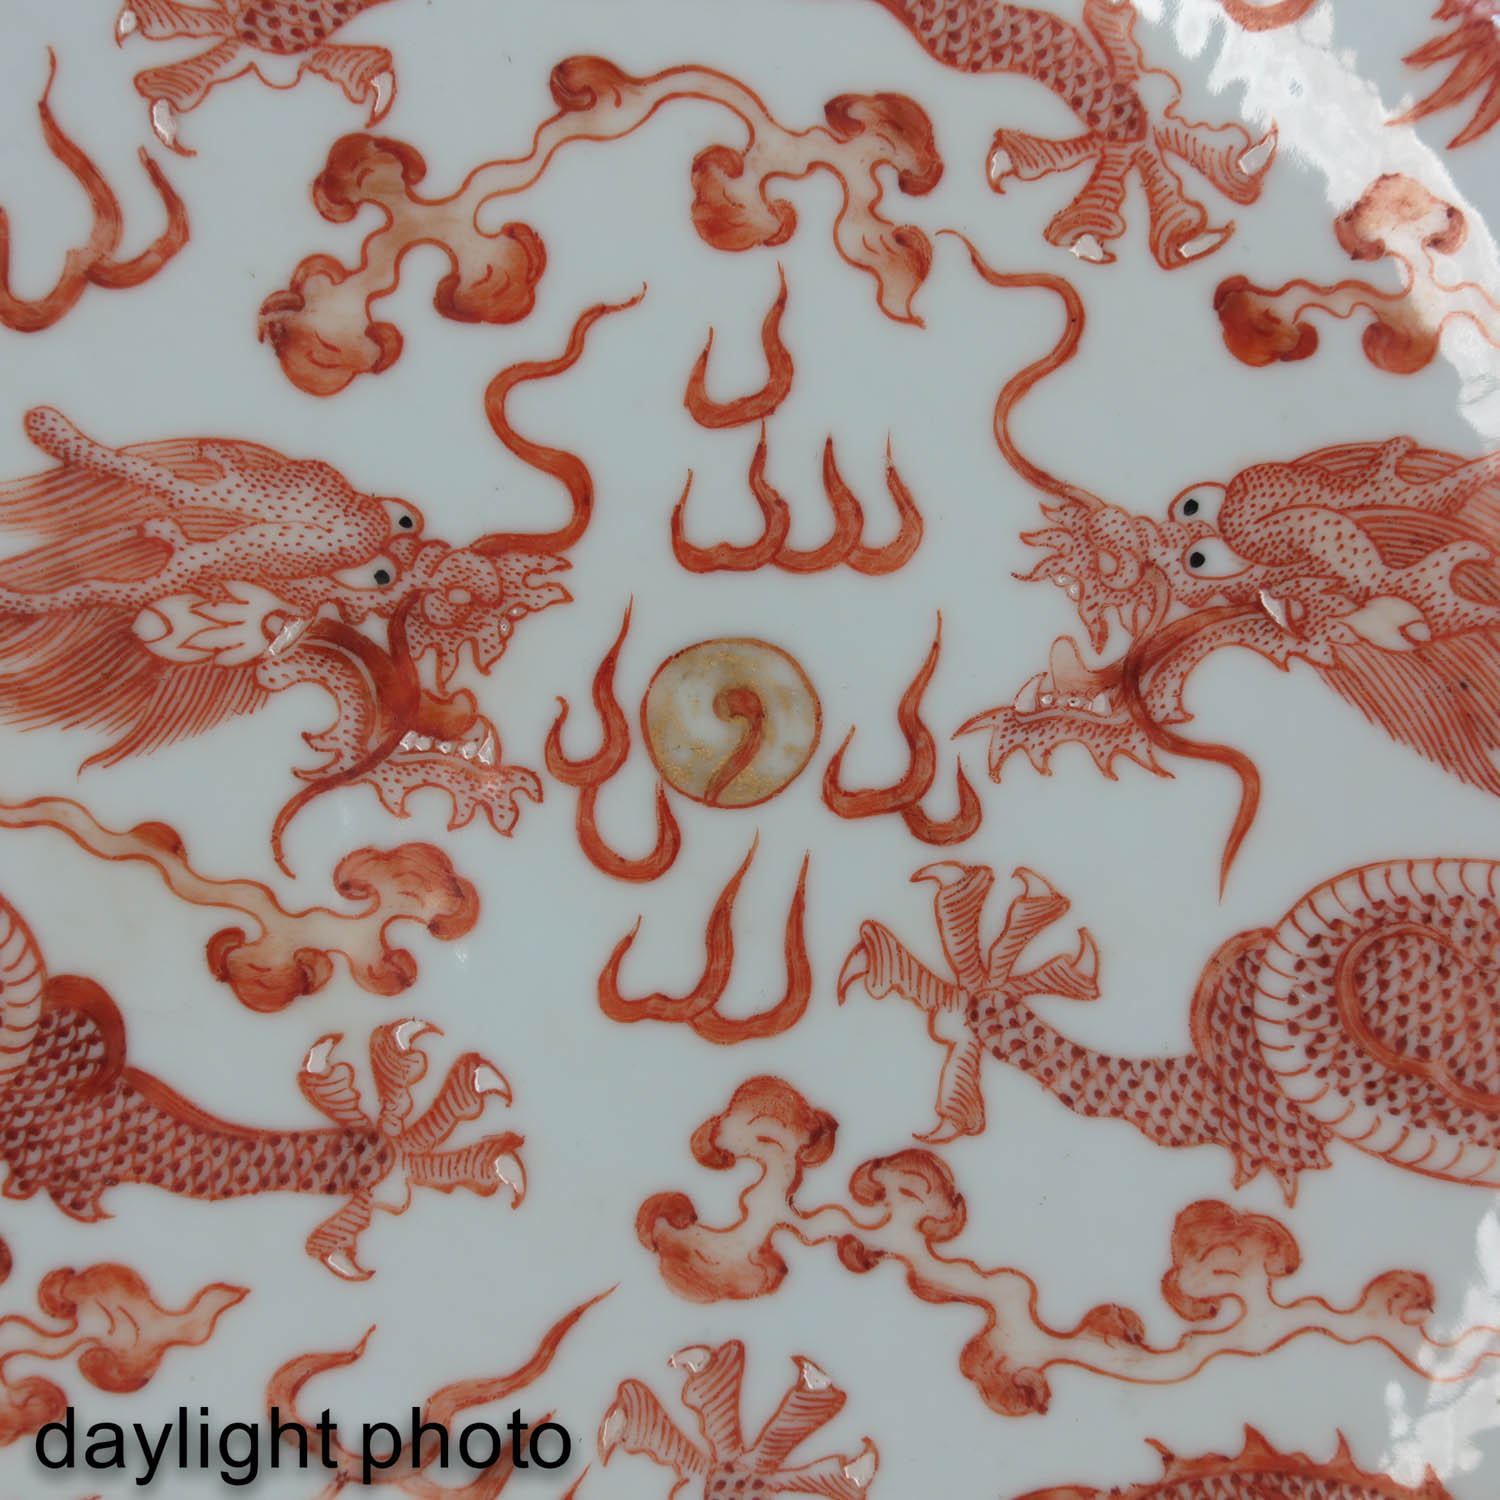 A Pair of Dragon Decor Plates - Image 10 of 10